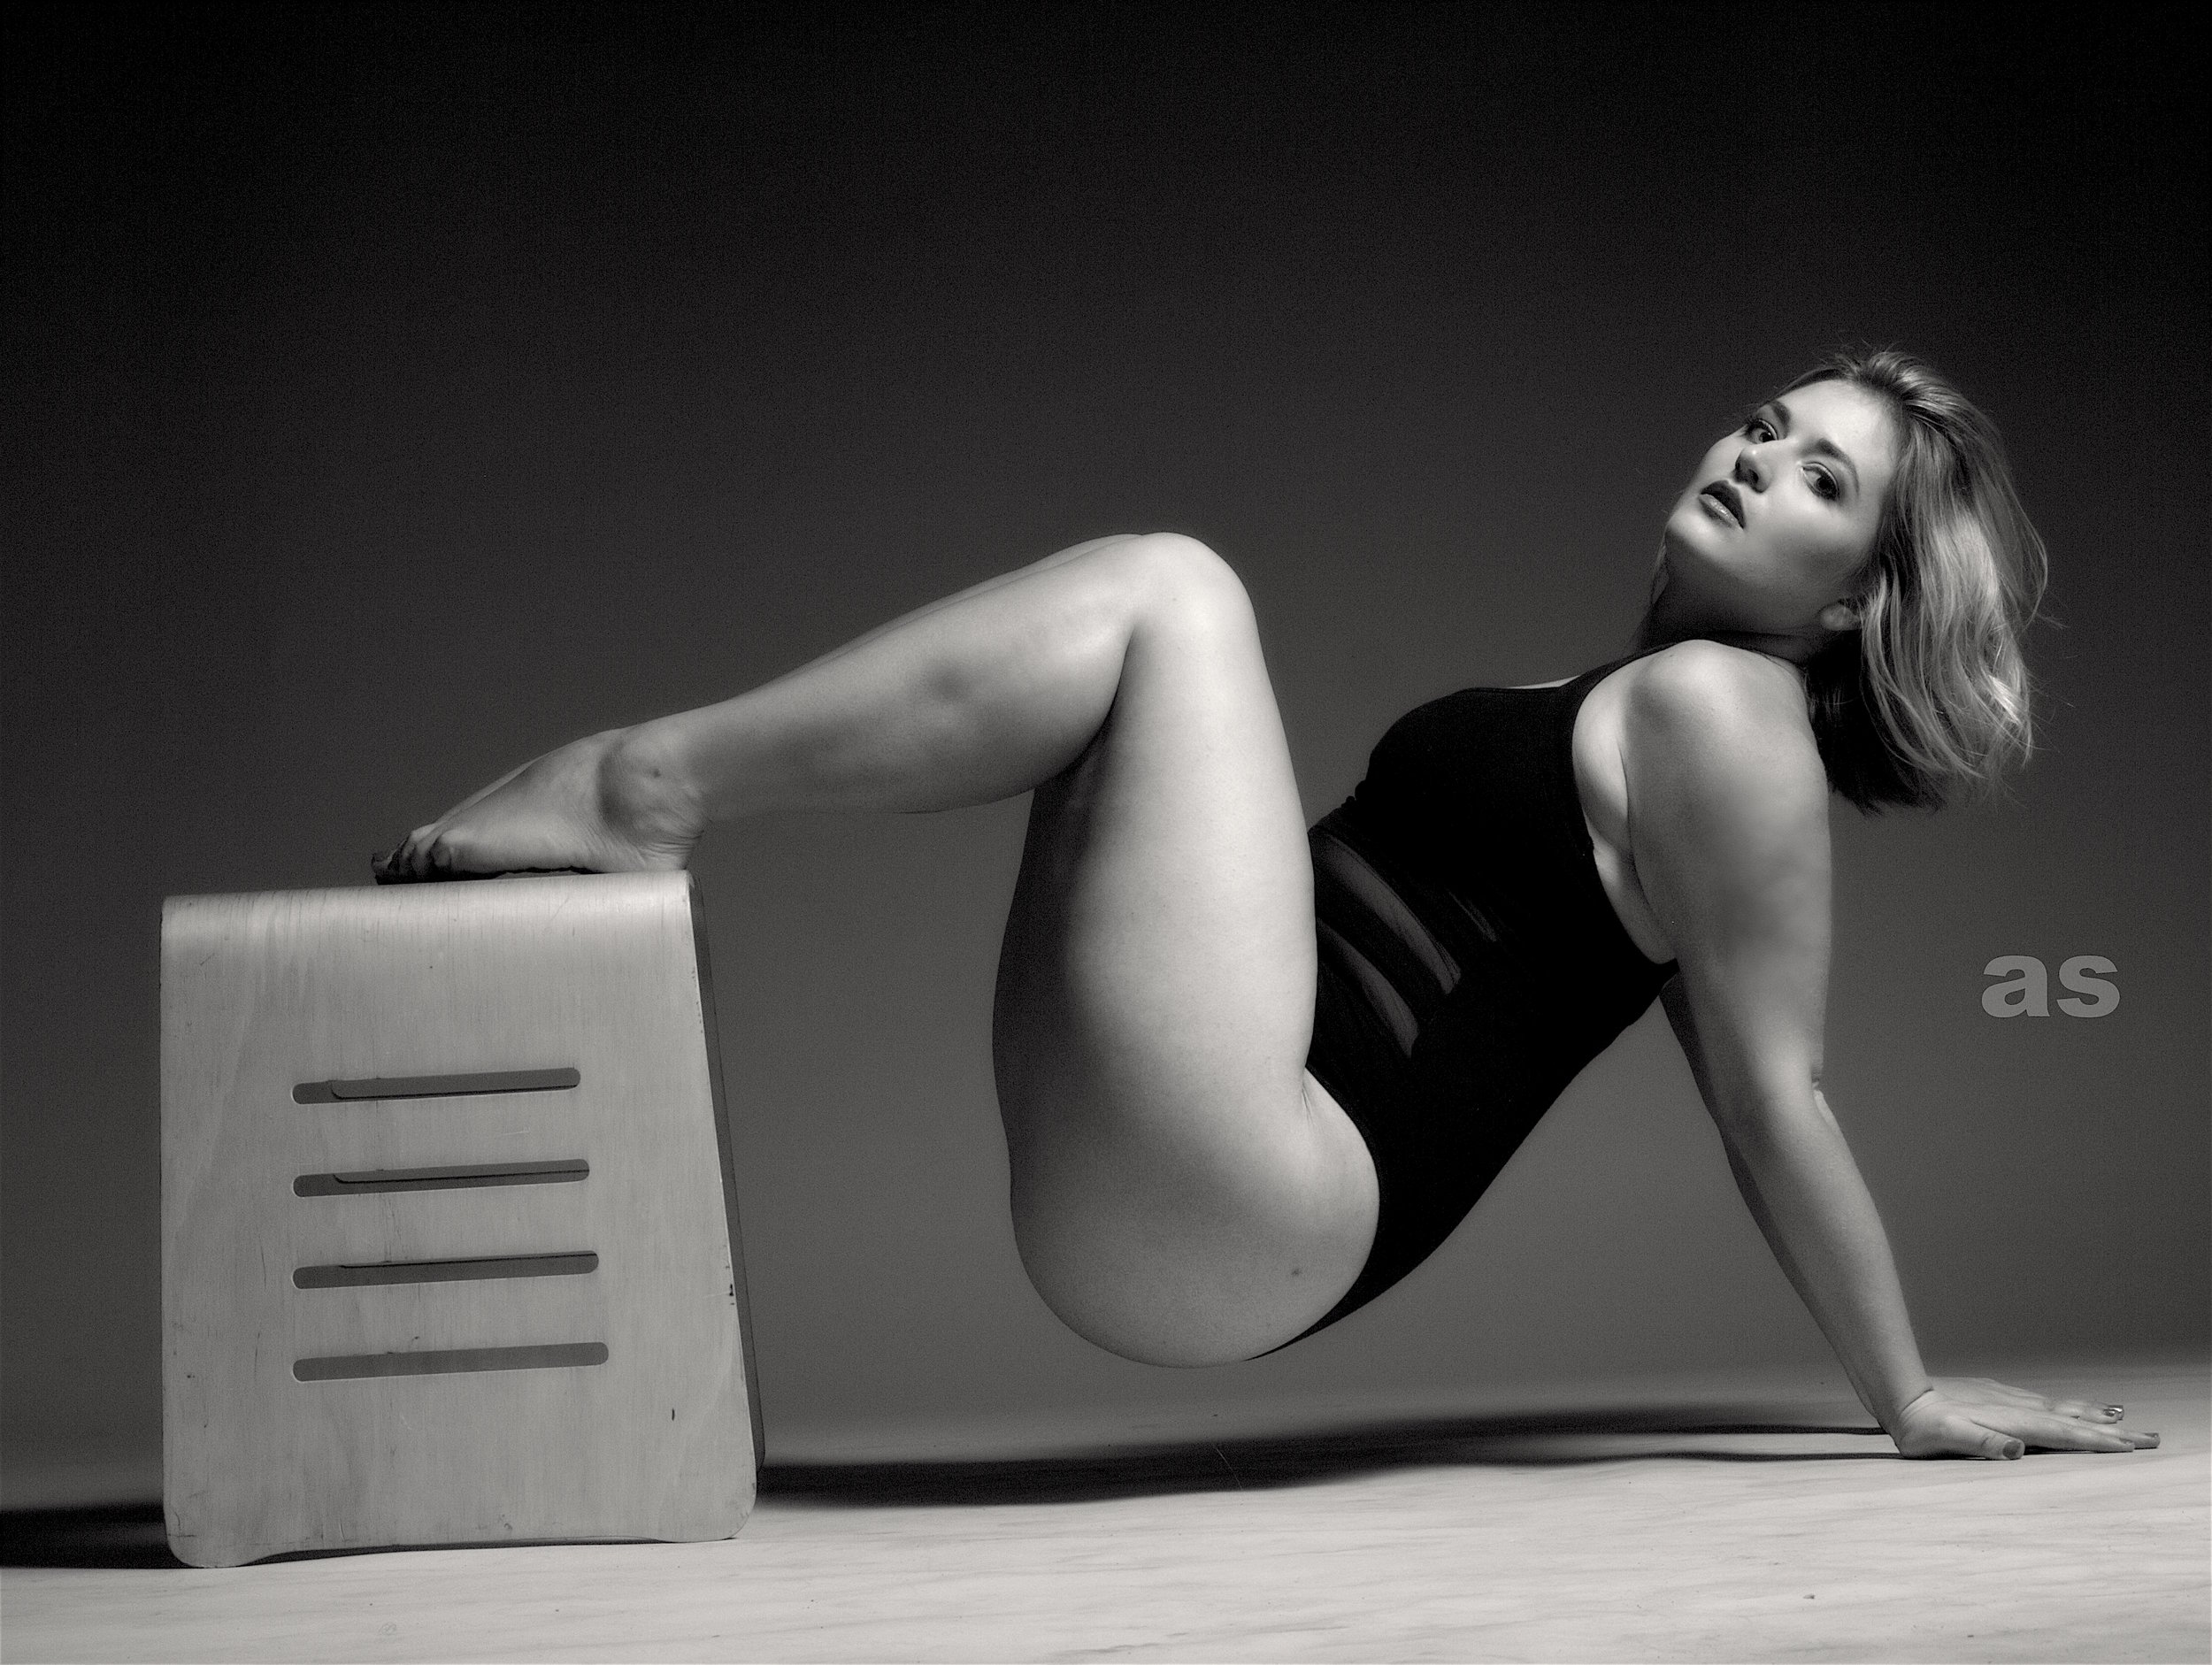 Katie Carpenter curves in black and white